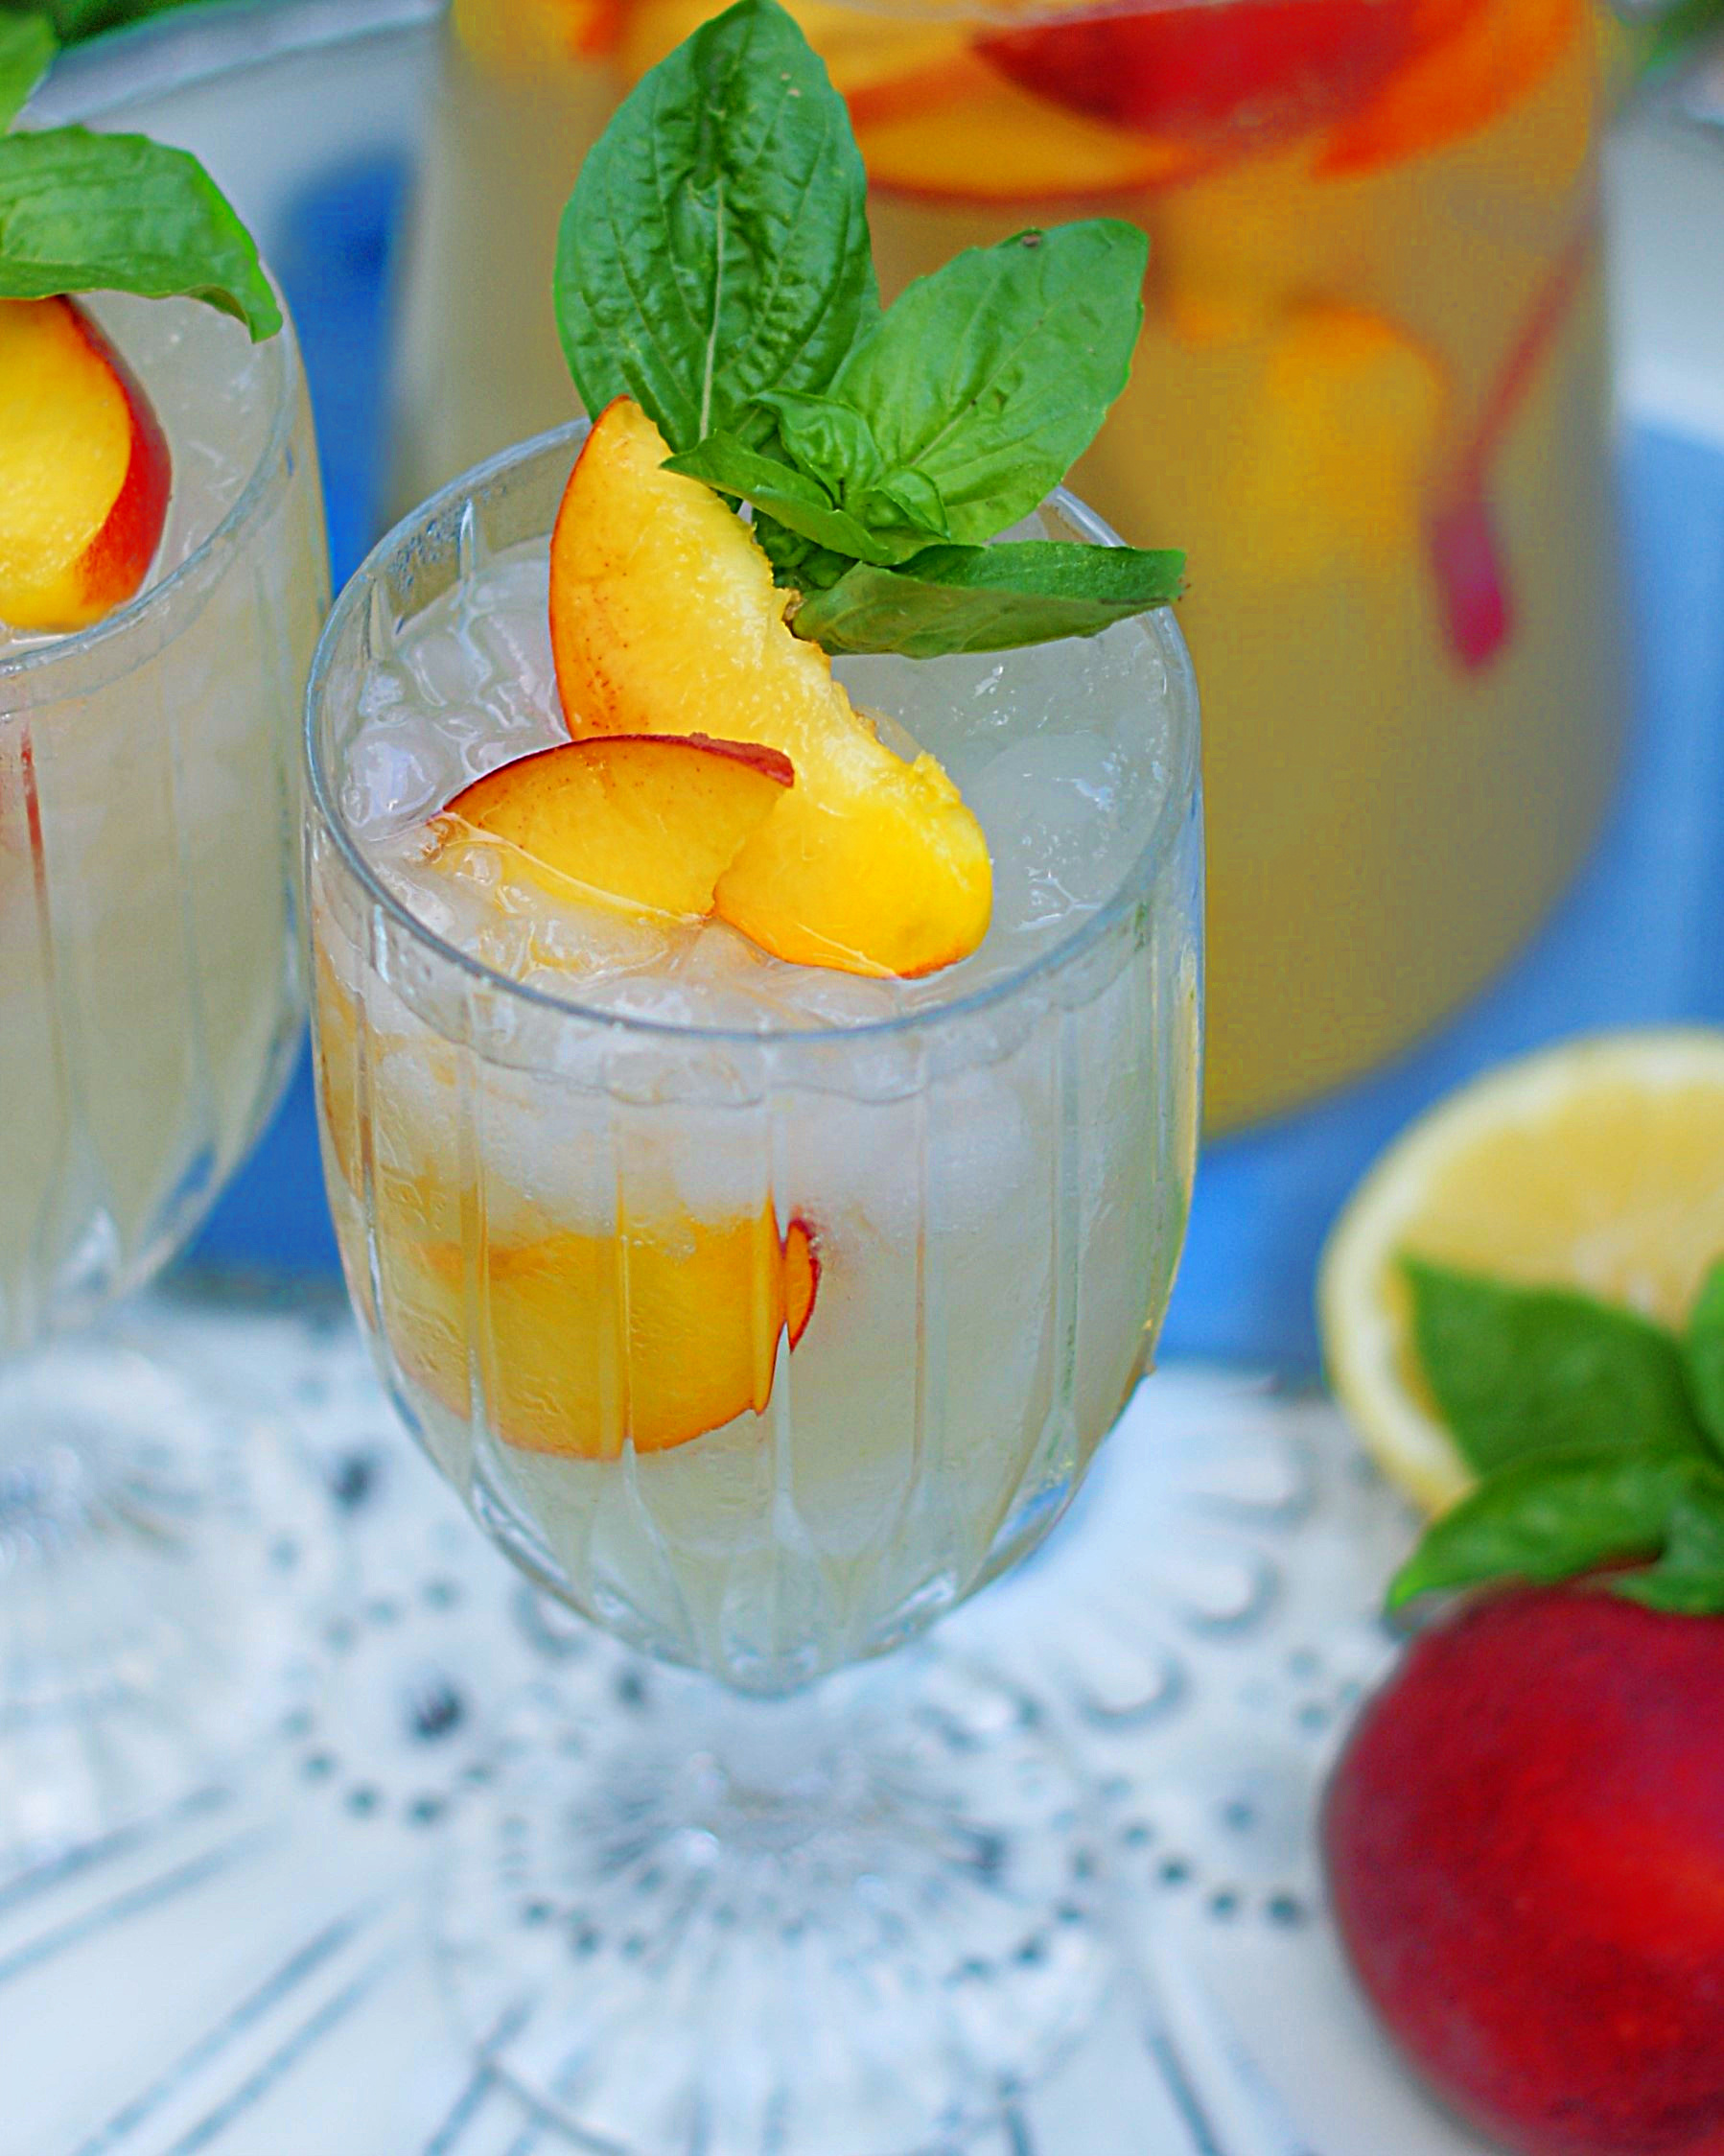 A crystal glass filled with sparkling peach lemonade, garnished with peach slices and basil.